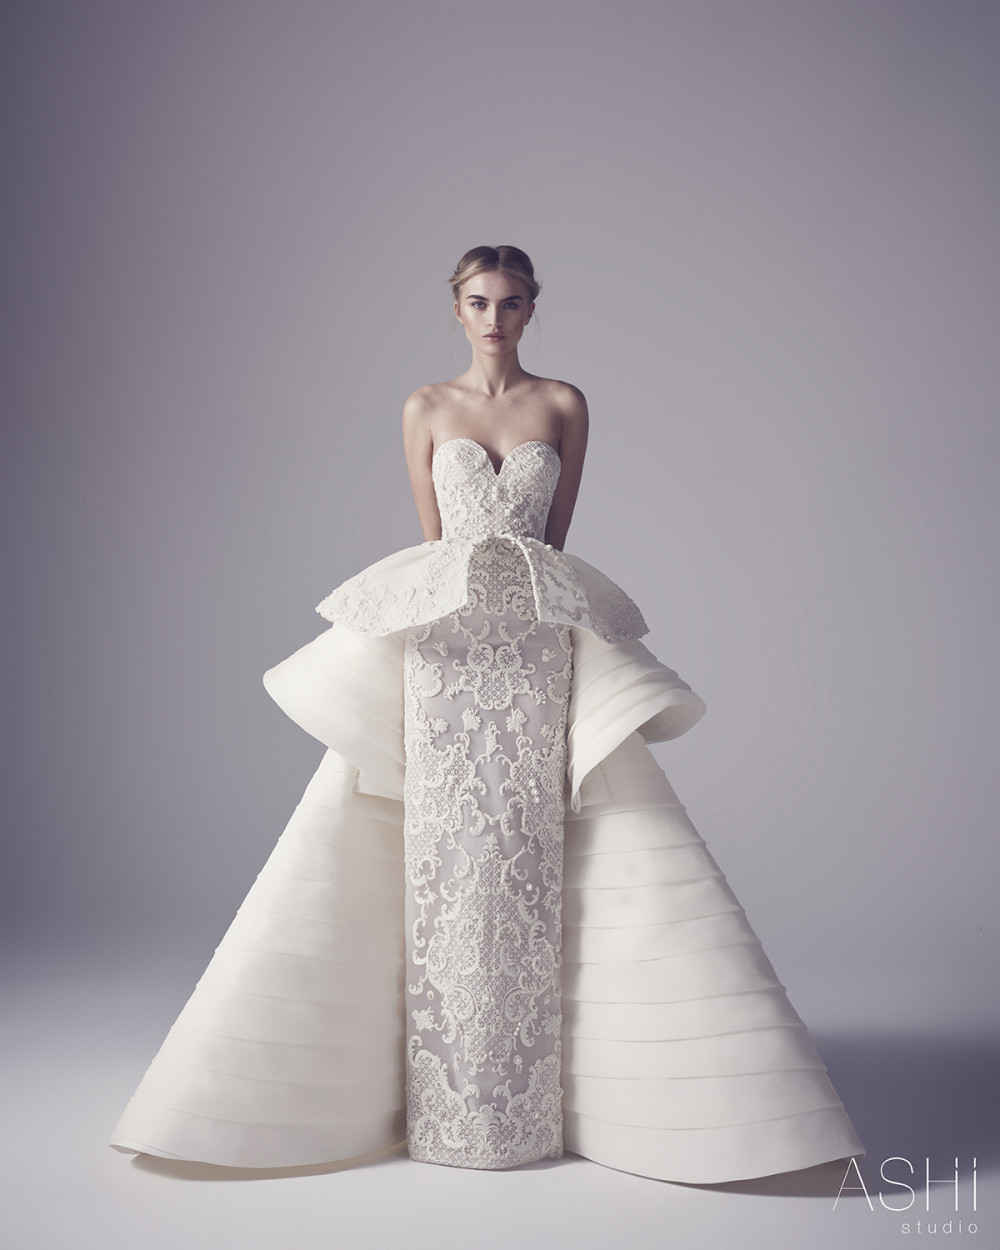 Bn Bridal Ashi Studio Spring Summer Couture Collection